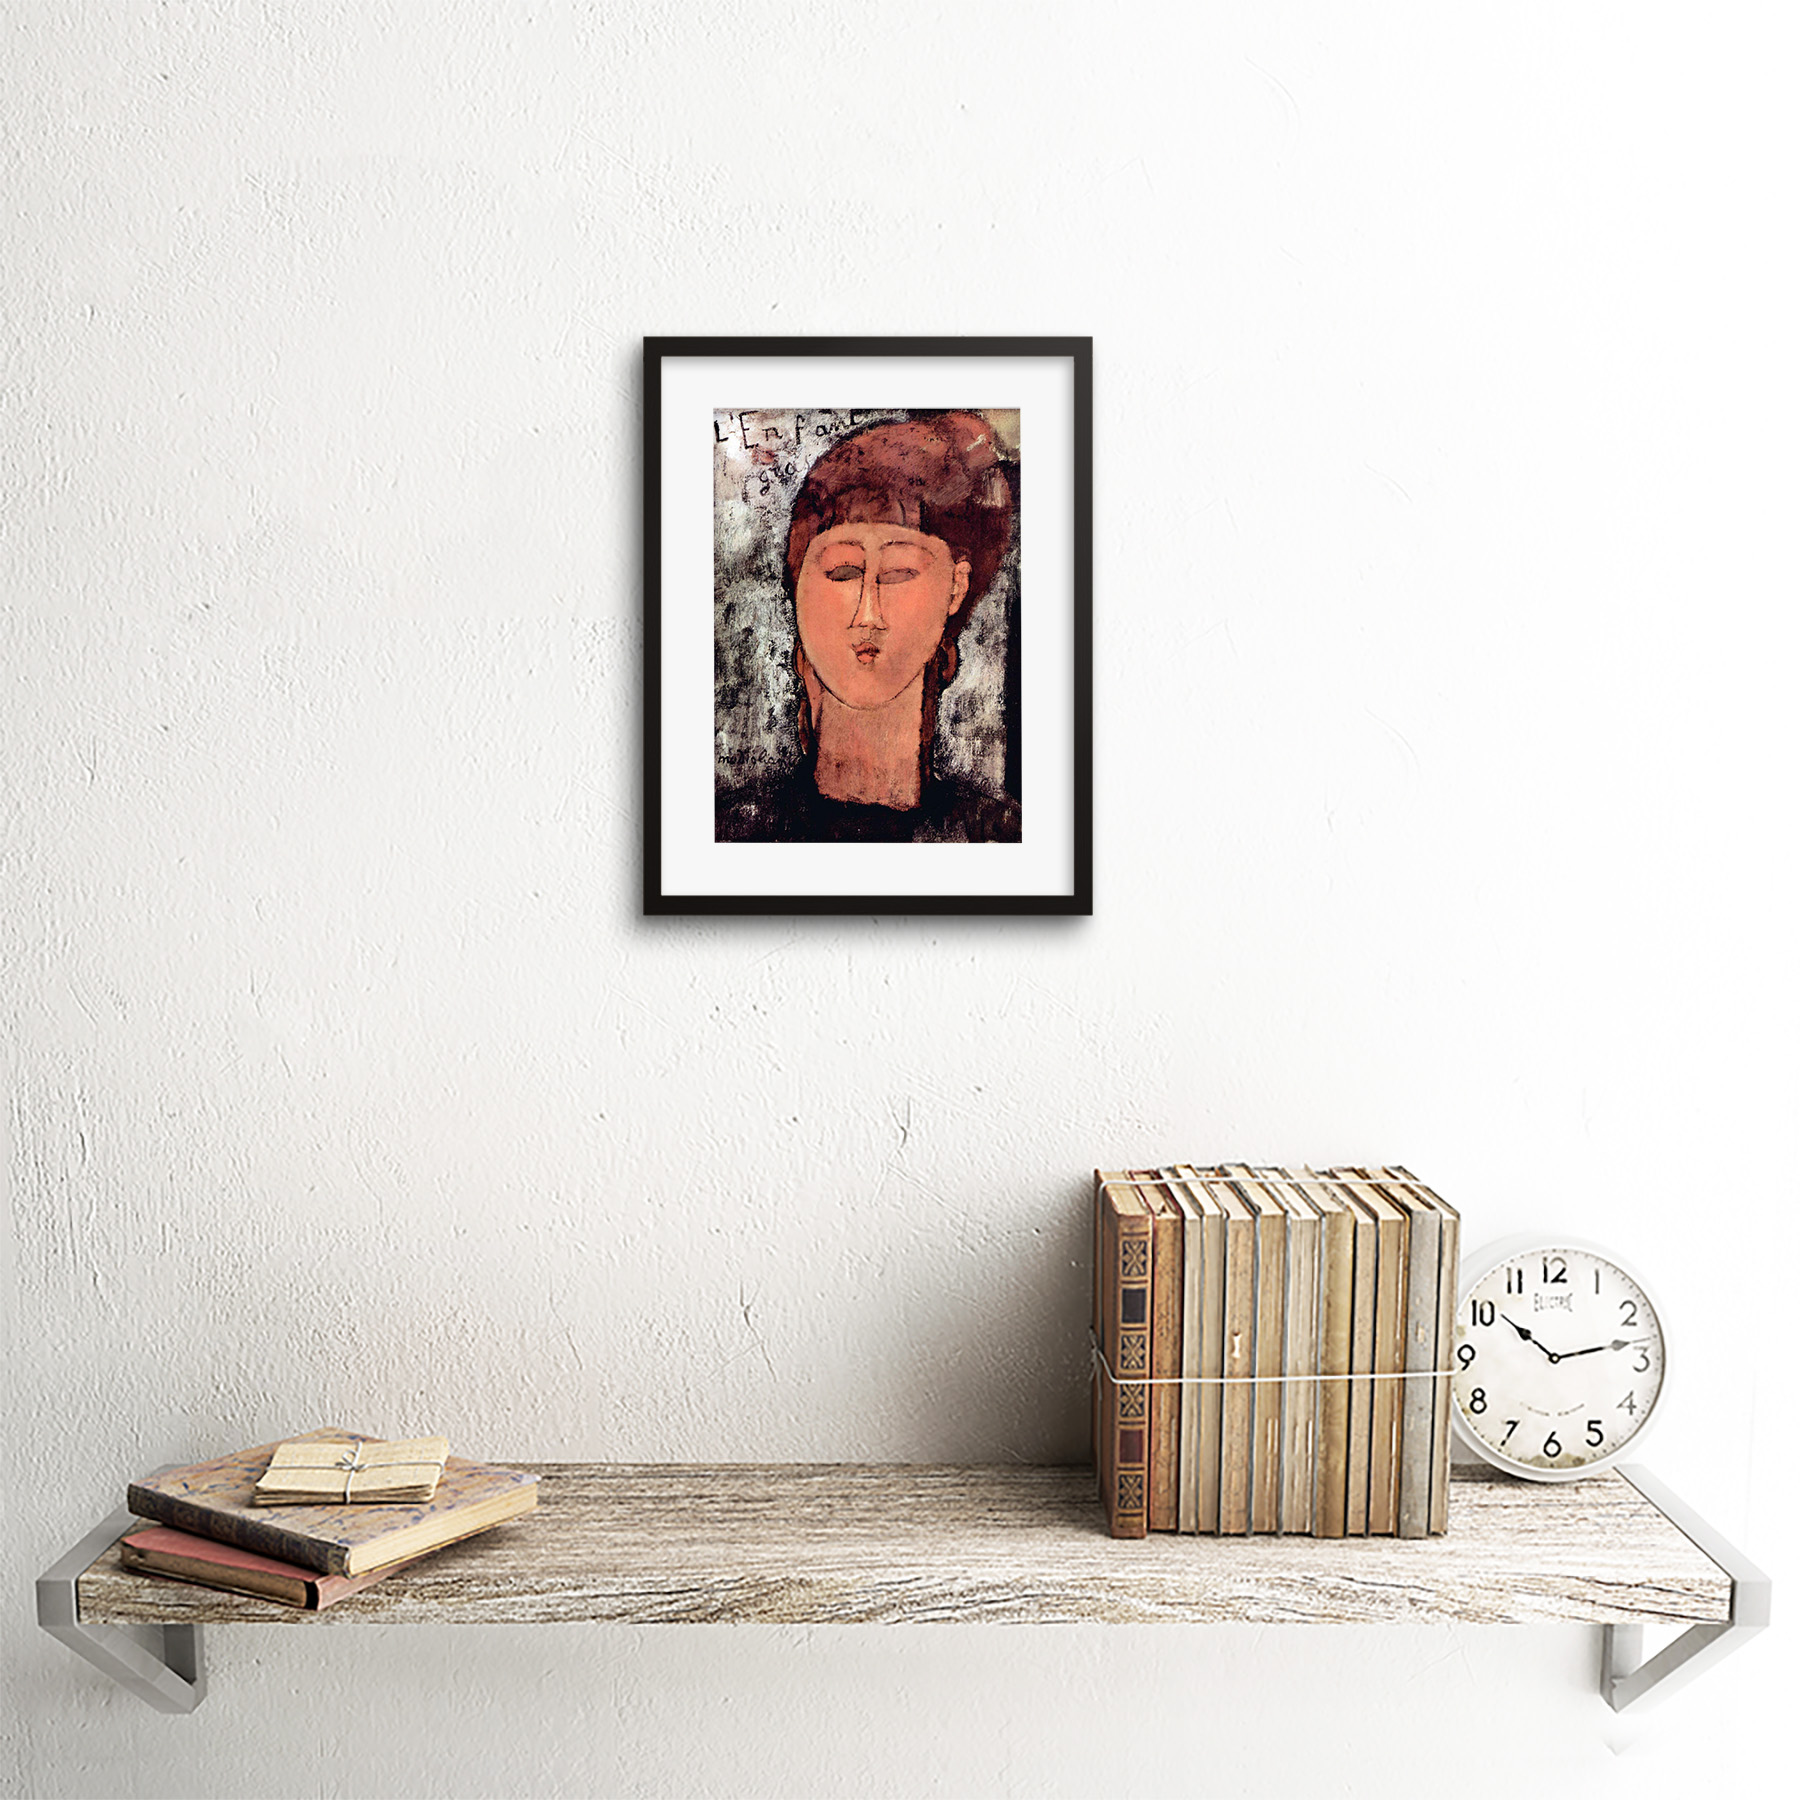 thumbnail 4 - Painting-Modigliani-Enfant-Gras-Old-Master-Framed-Picture-Art-Print-9x7-Inch